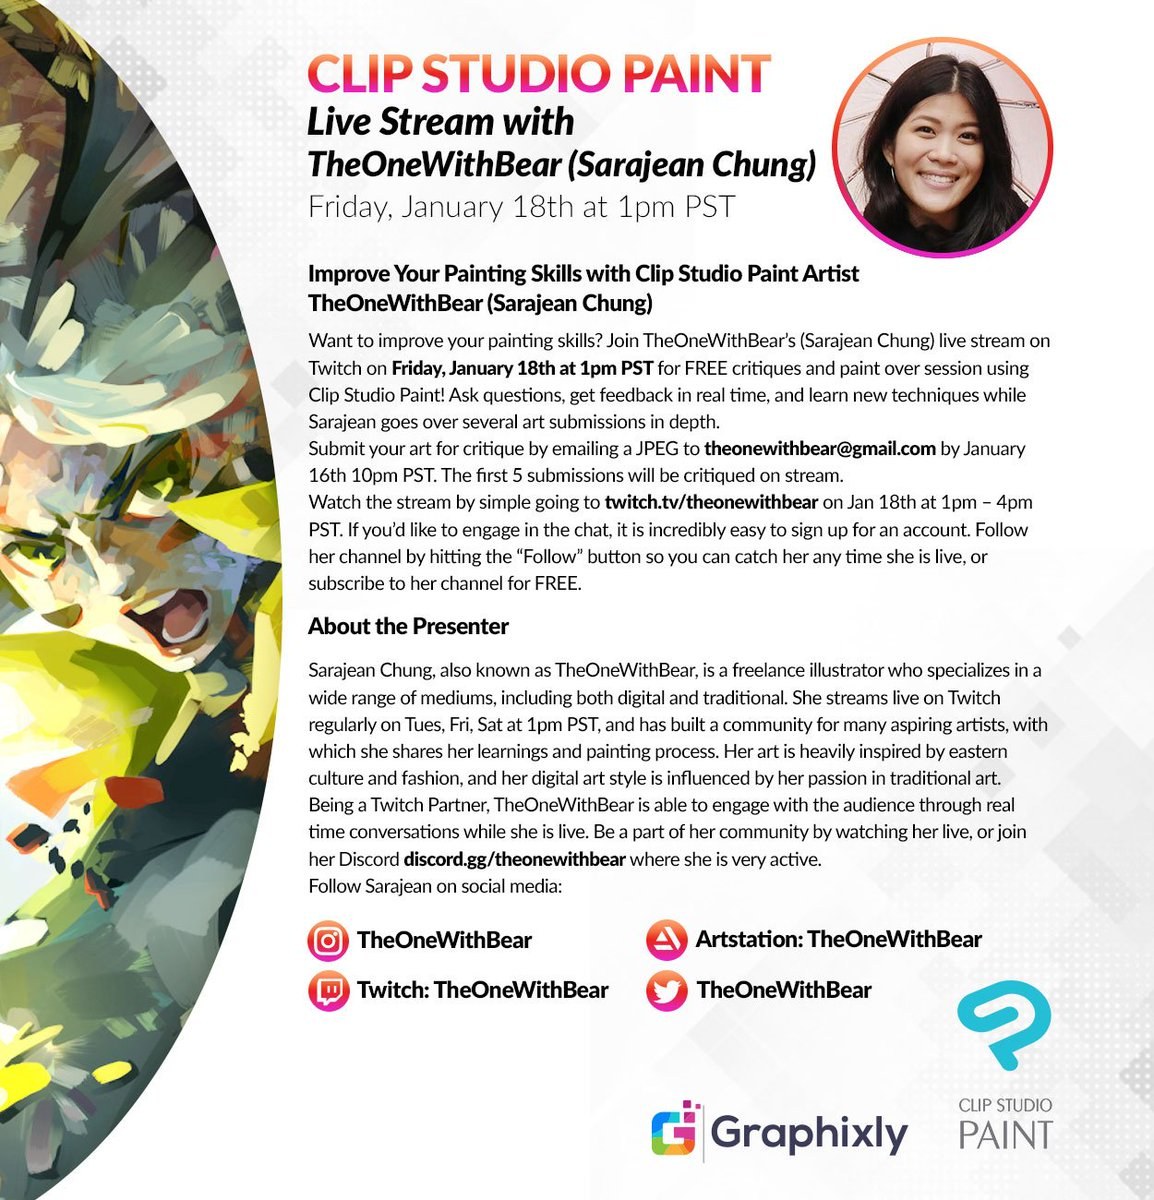 Submit your art for critique and improve your painting skills with Sarajean Chung on her Twitch Live Stream. Watch the stream on Friday, January 18th at 1pm PST. http://twitch.tv/theonewithbear   Learn more here: http://bit.ly/2FyJIuq  @graphixly @TheOneWithBear